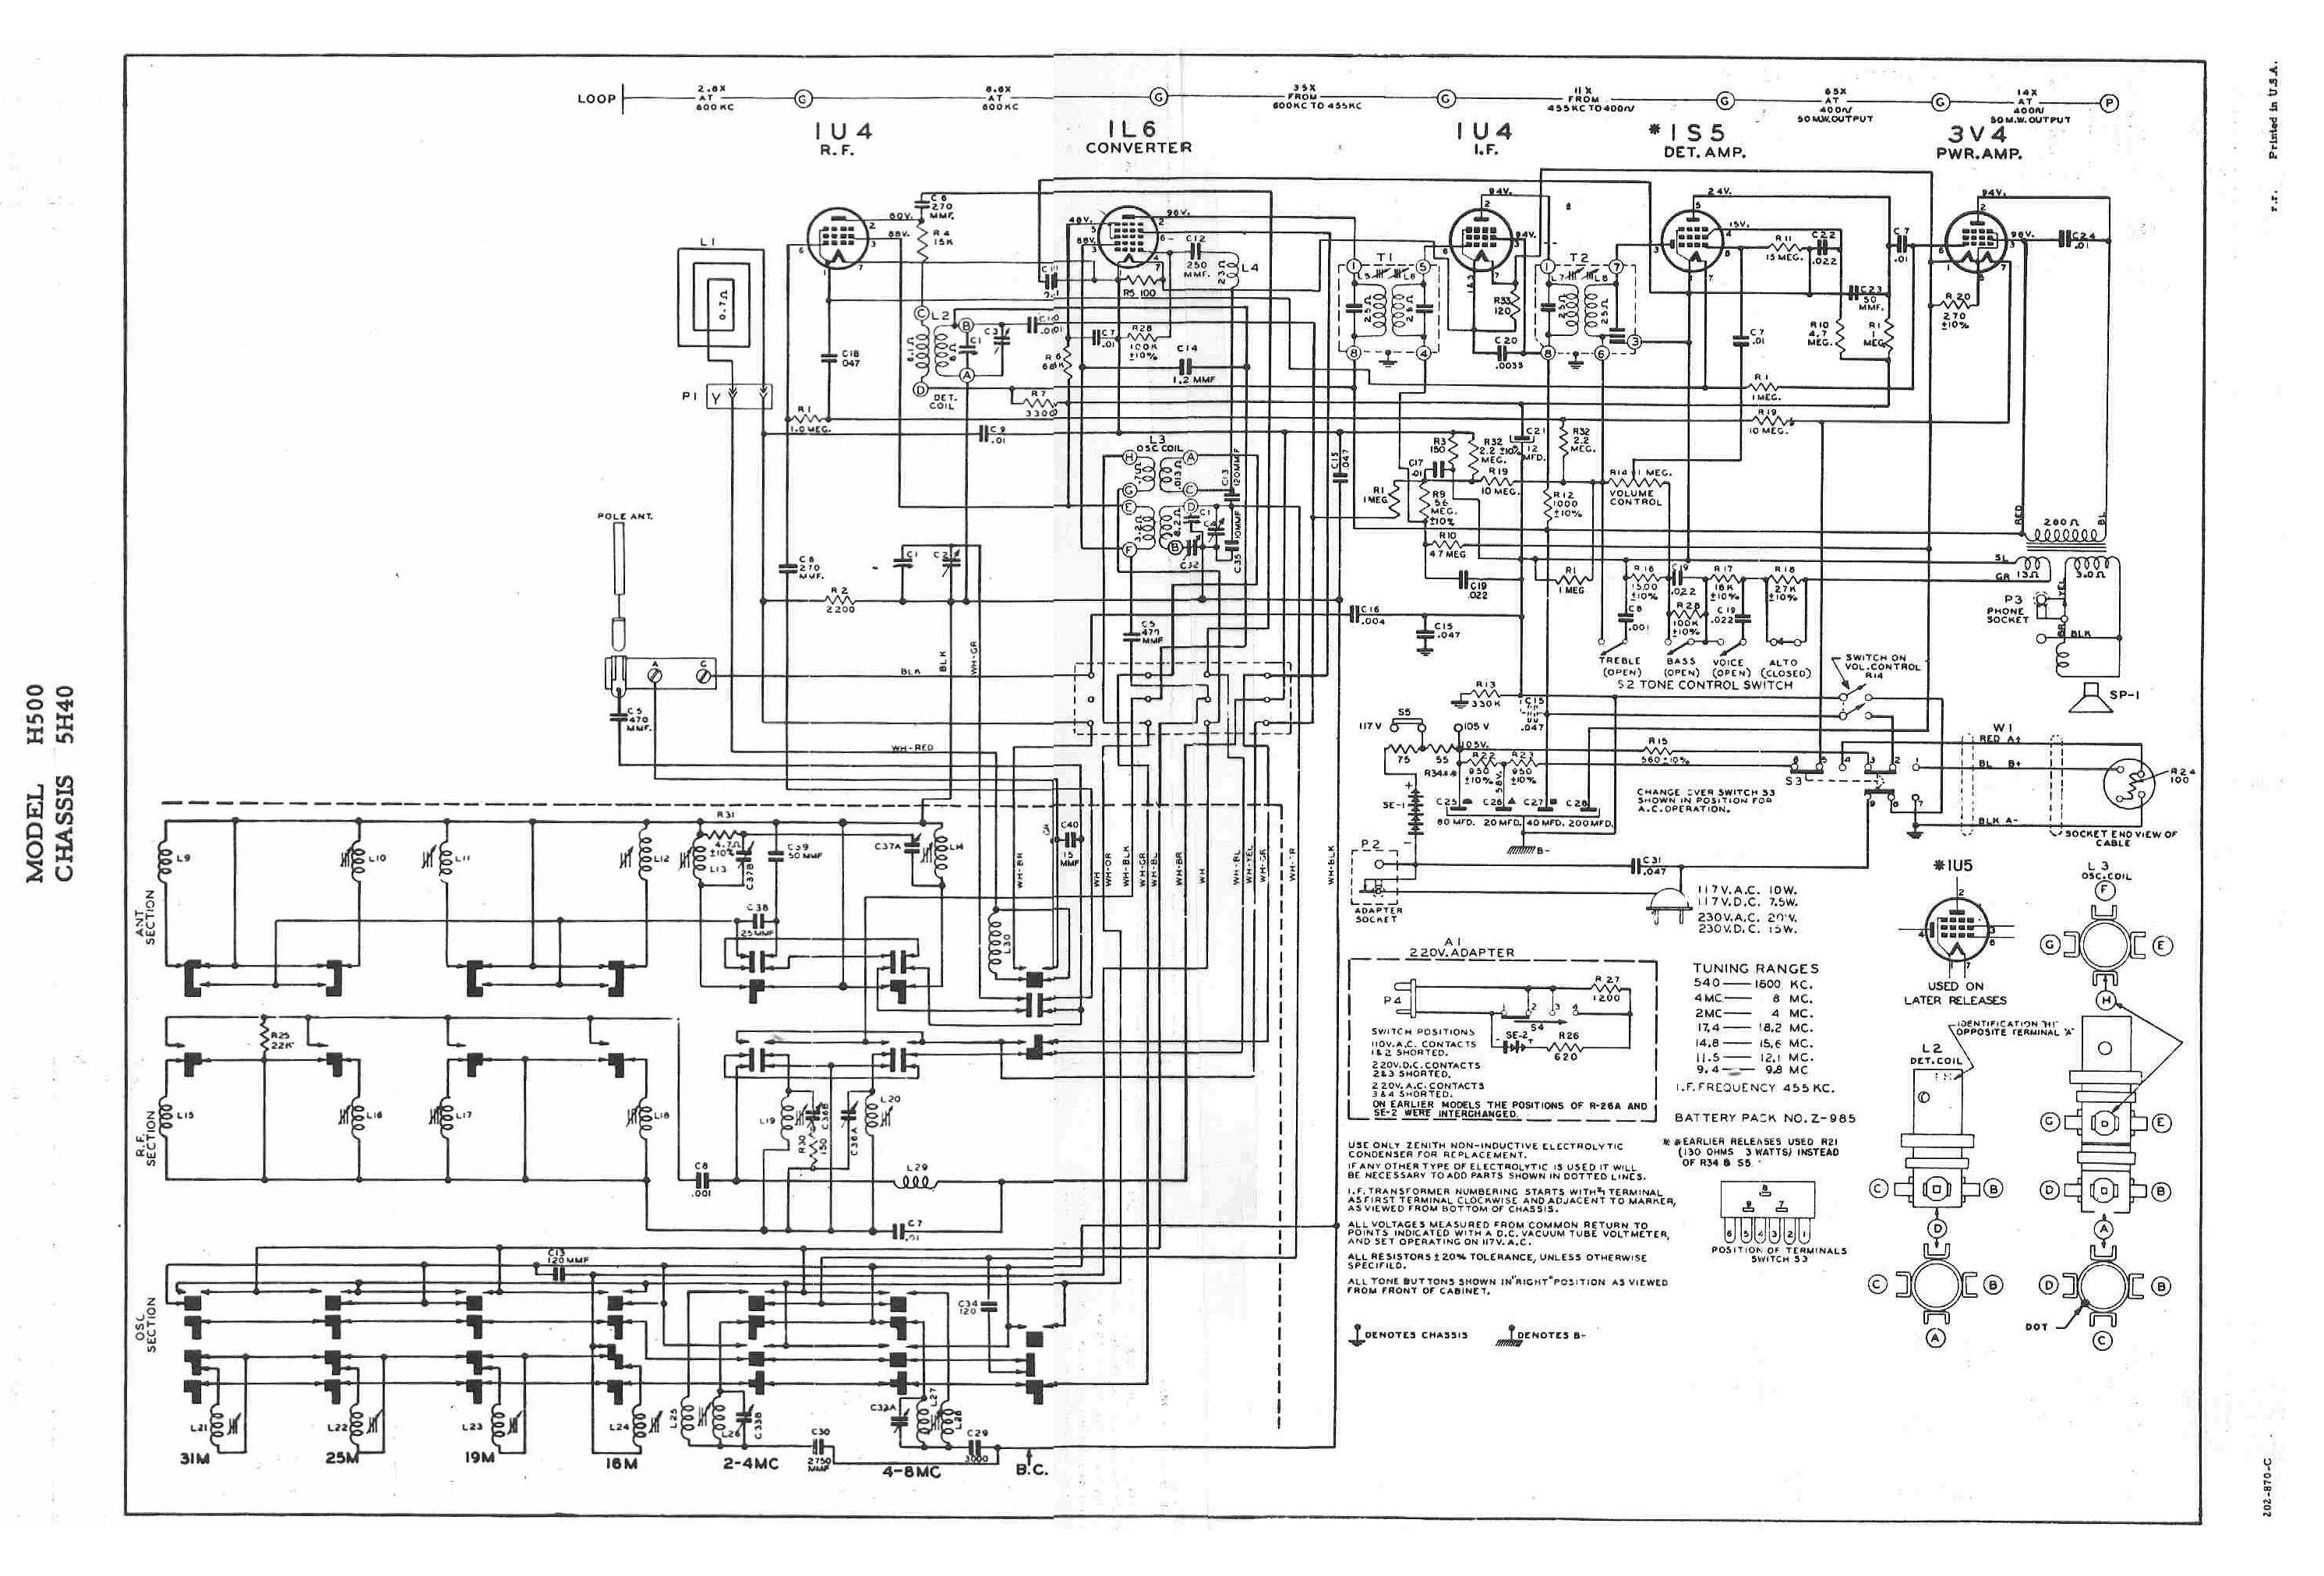 Schematic Wallpapers Weapons Hq Schematic Pictures